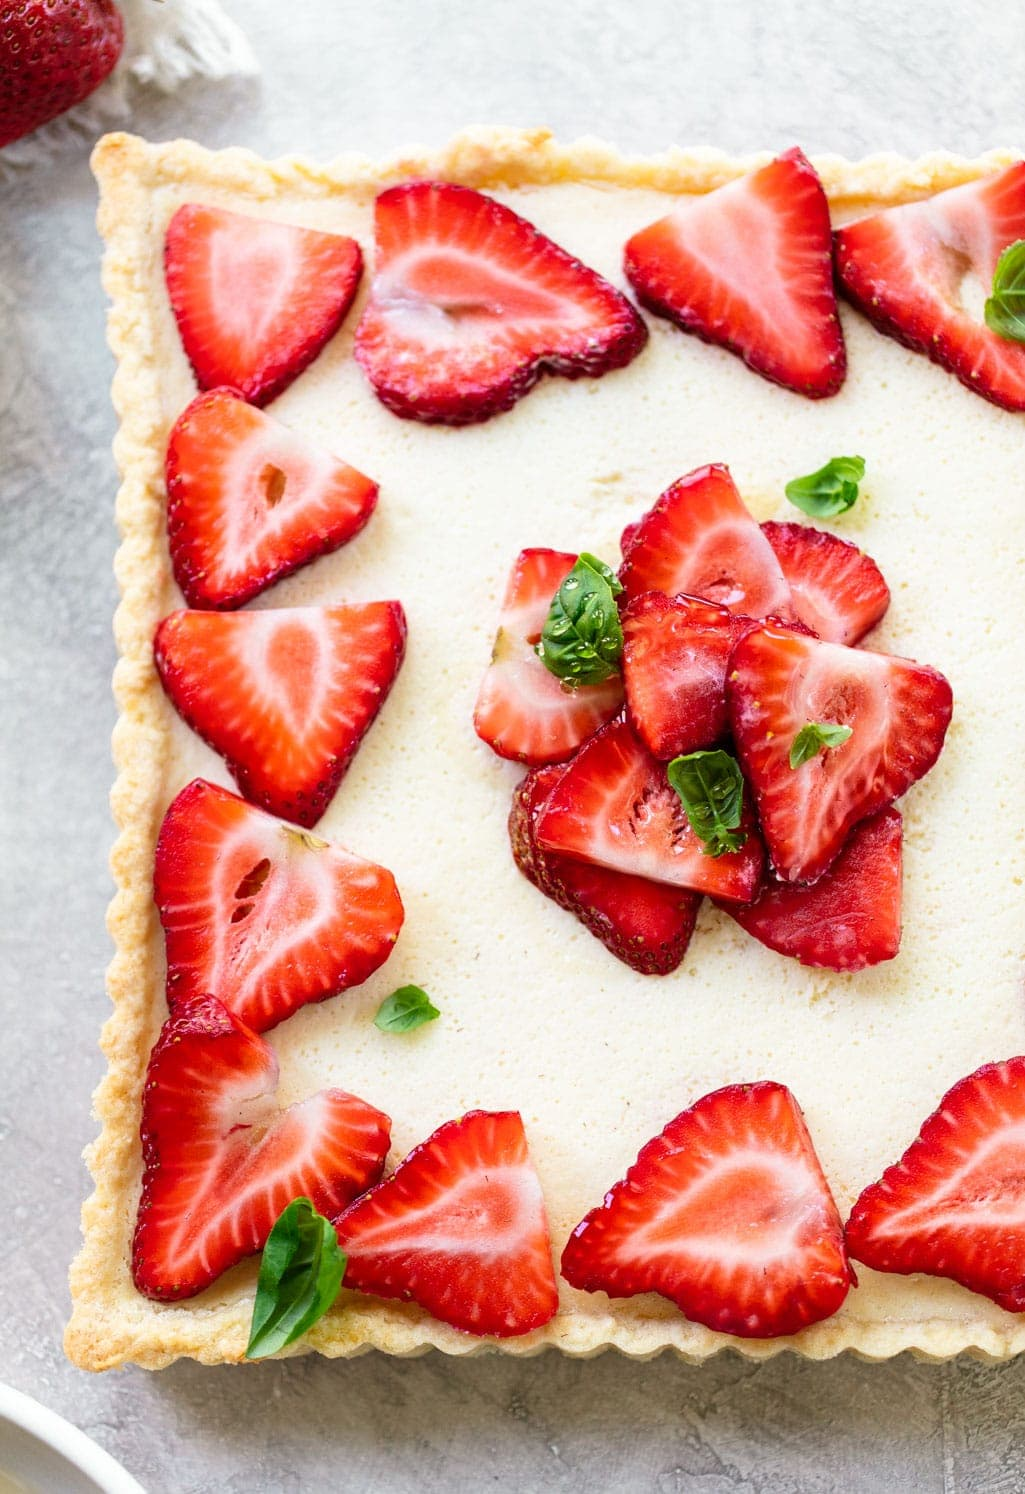 Italian Strawberry Mascarpone Tart